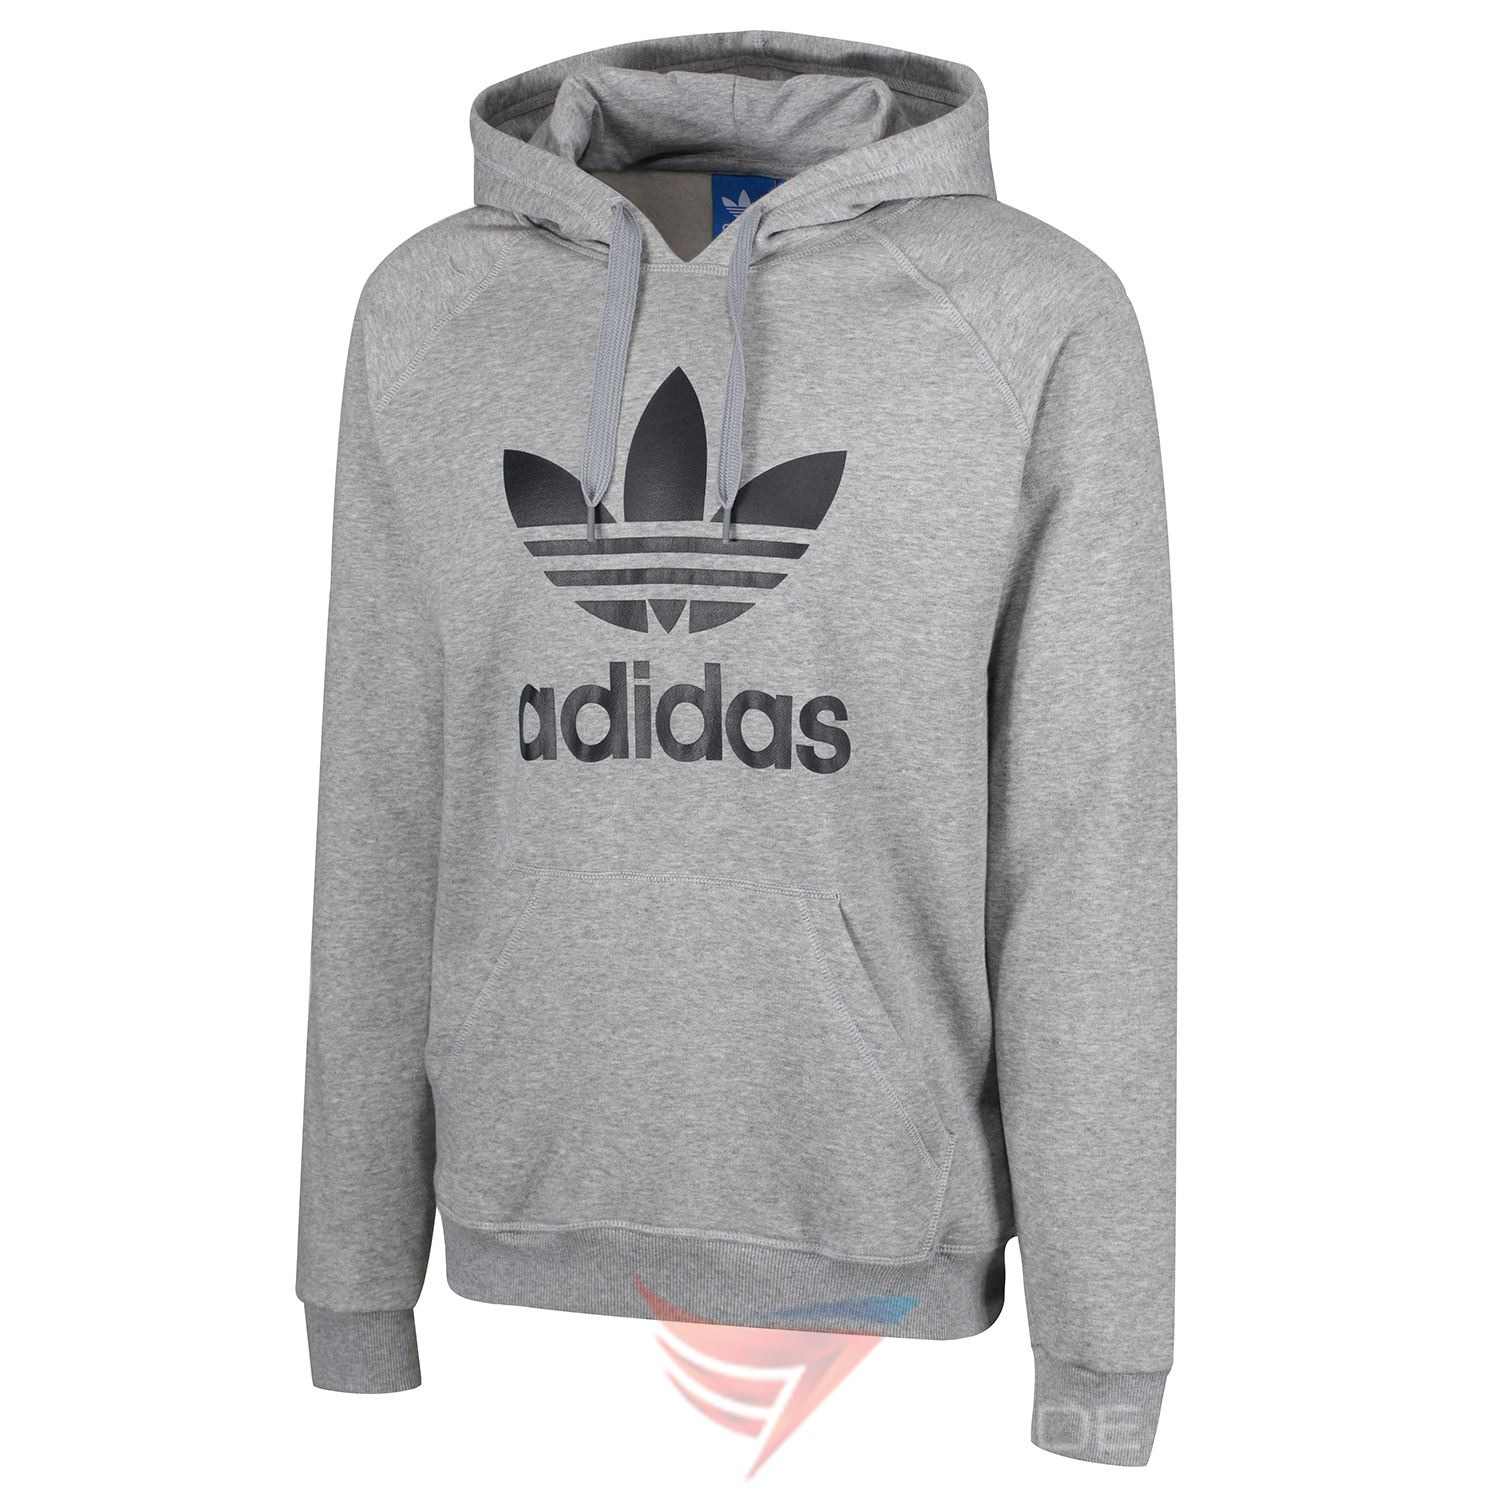 Details about adidas ORIGINALS TREFOIL HOODIE BLUE NAVY BLACK GREY PULLOVER HOODED S M L XL